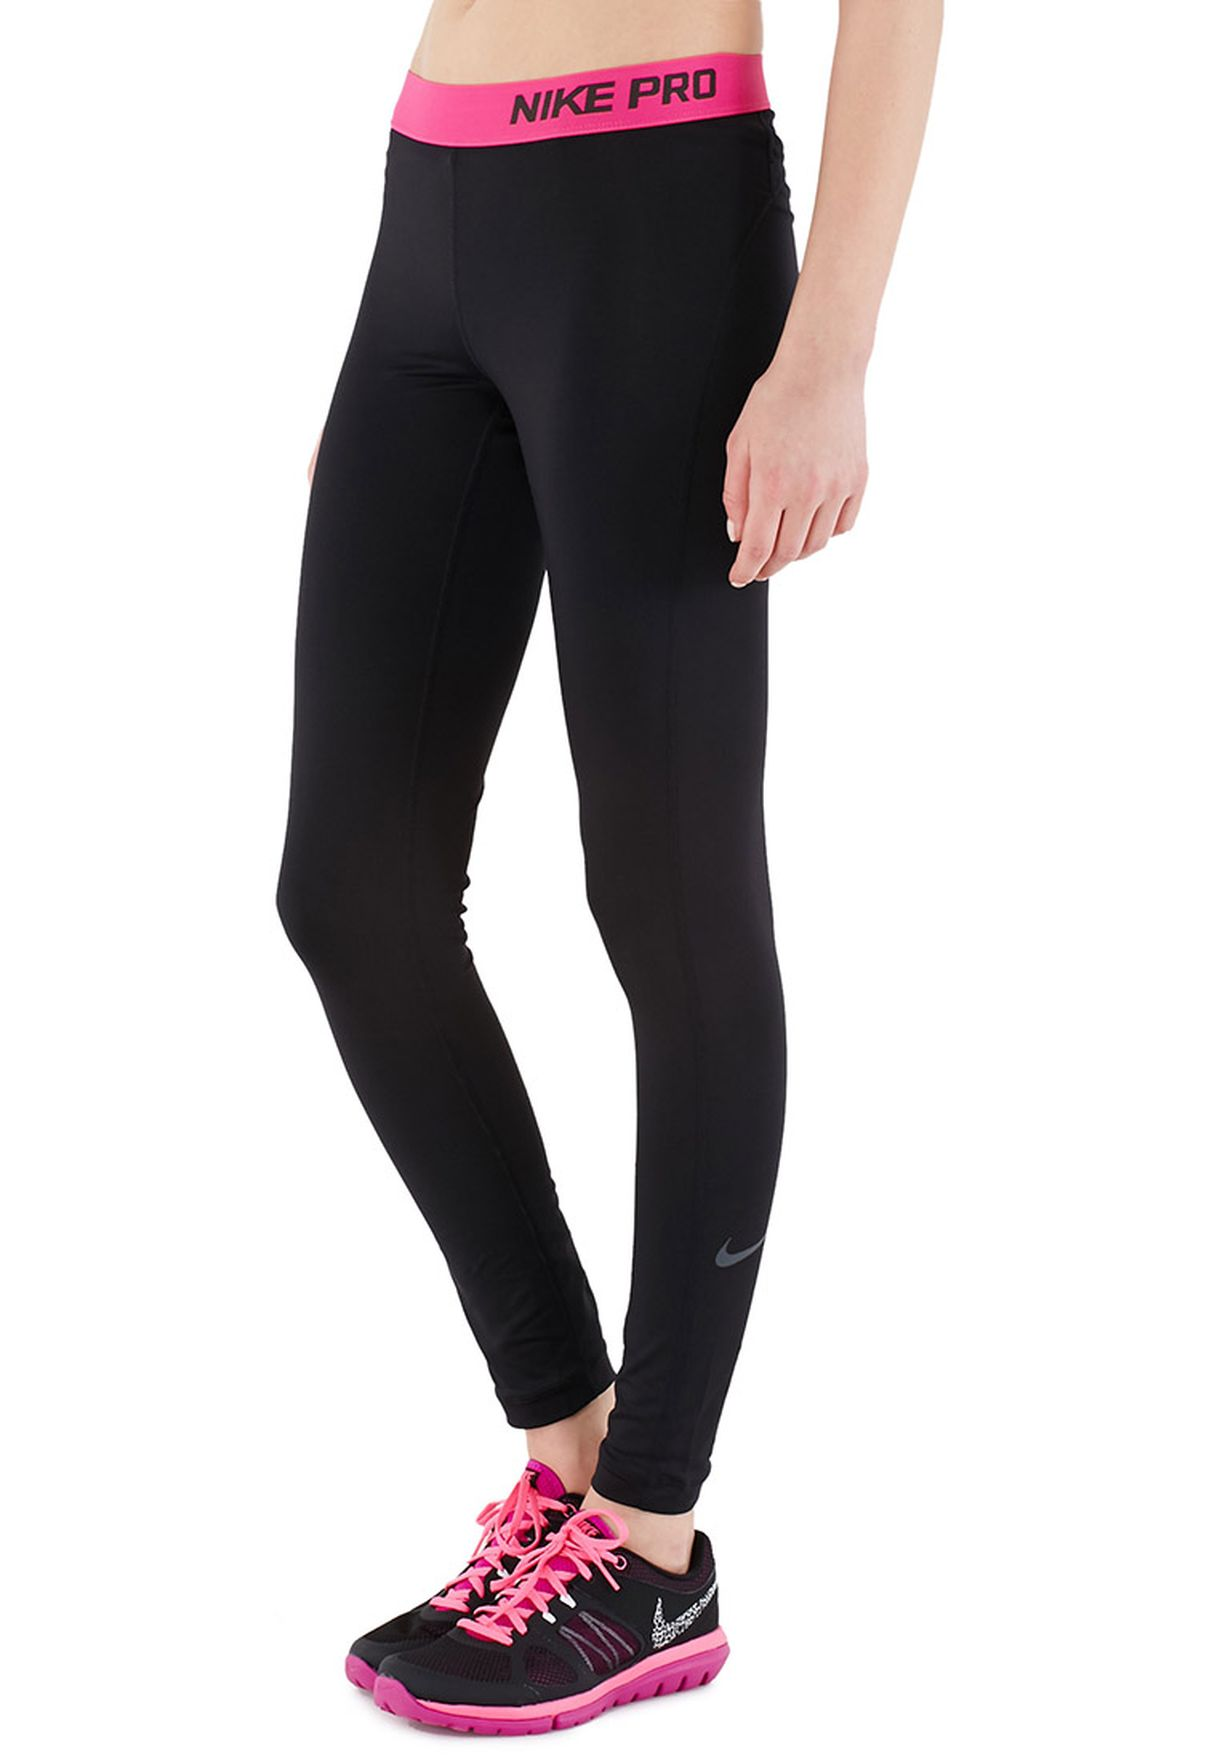 abee8247584ce Shop Nike black Pro Tights 589367-011 for Women in Kuwait - NI727AT55JGY